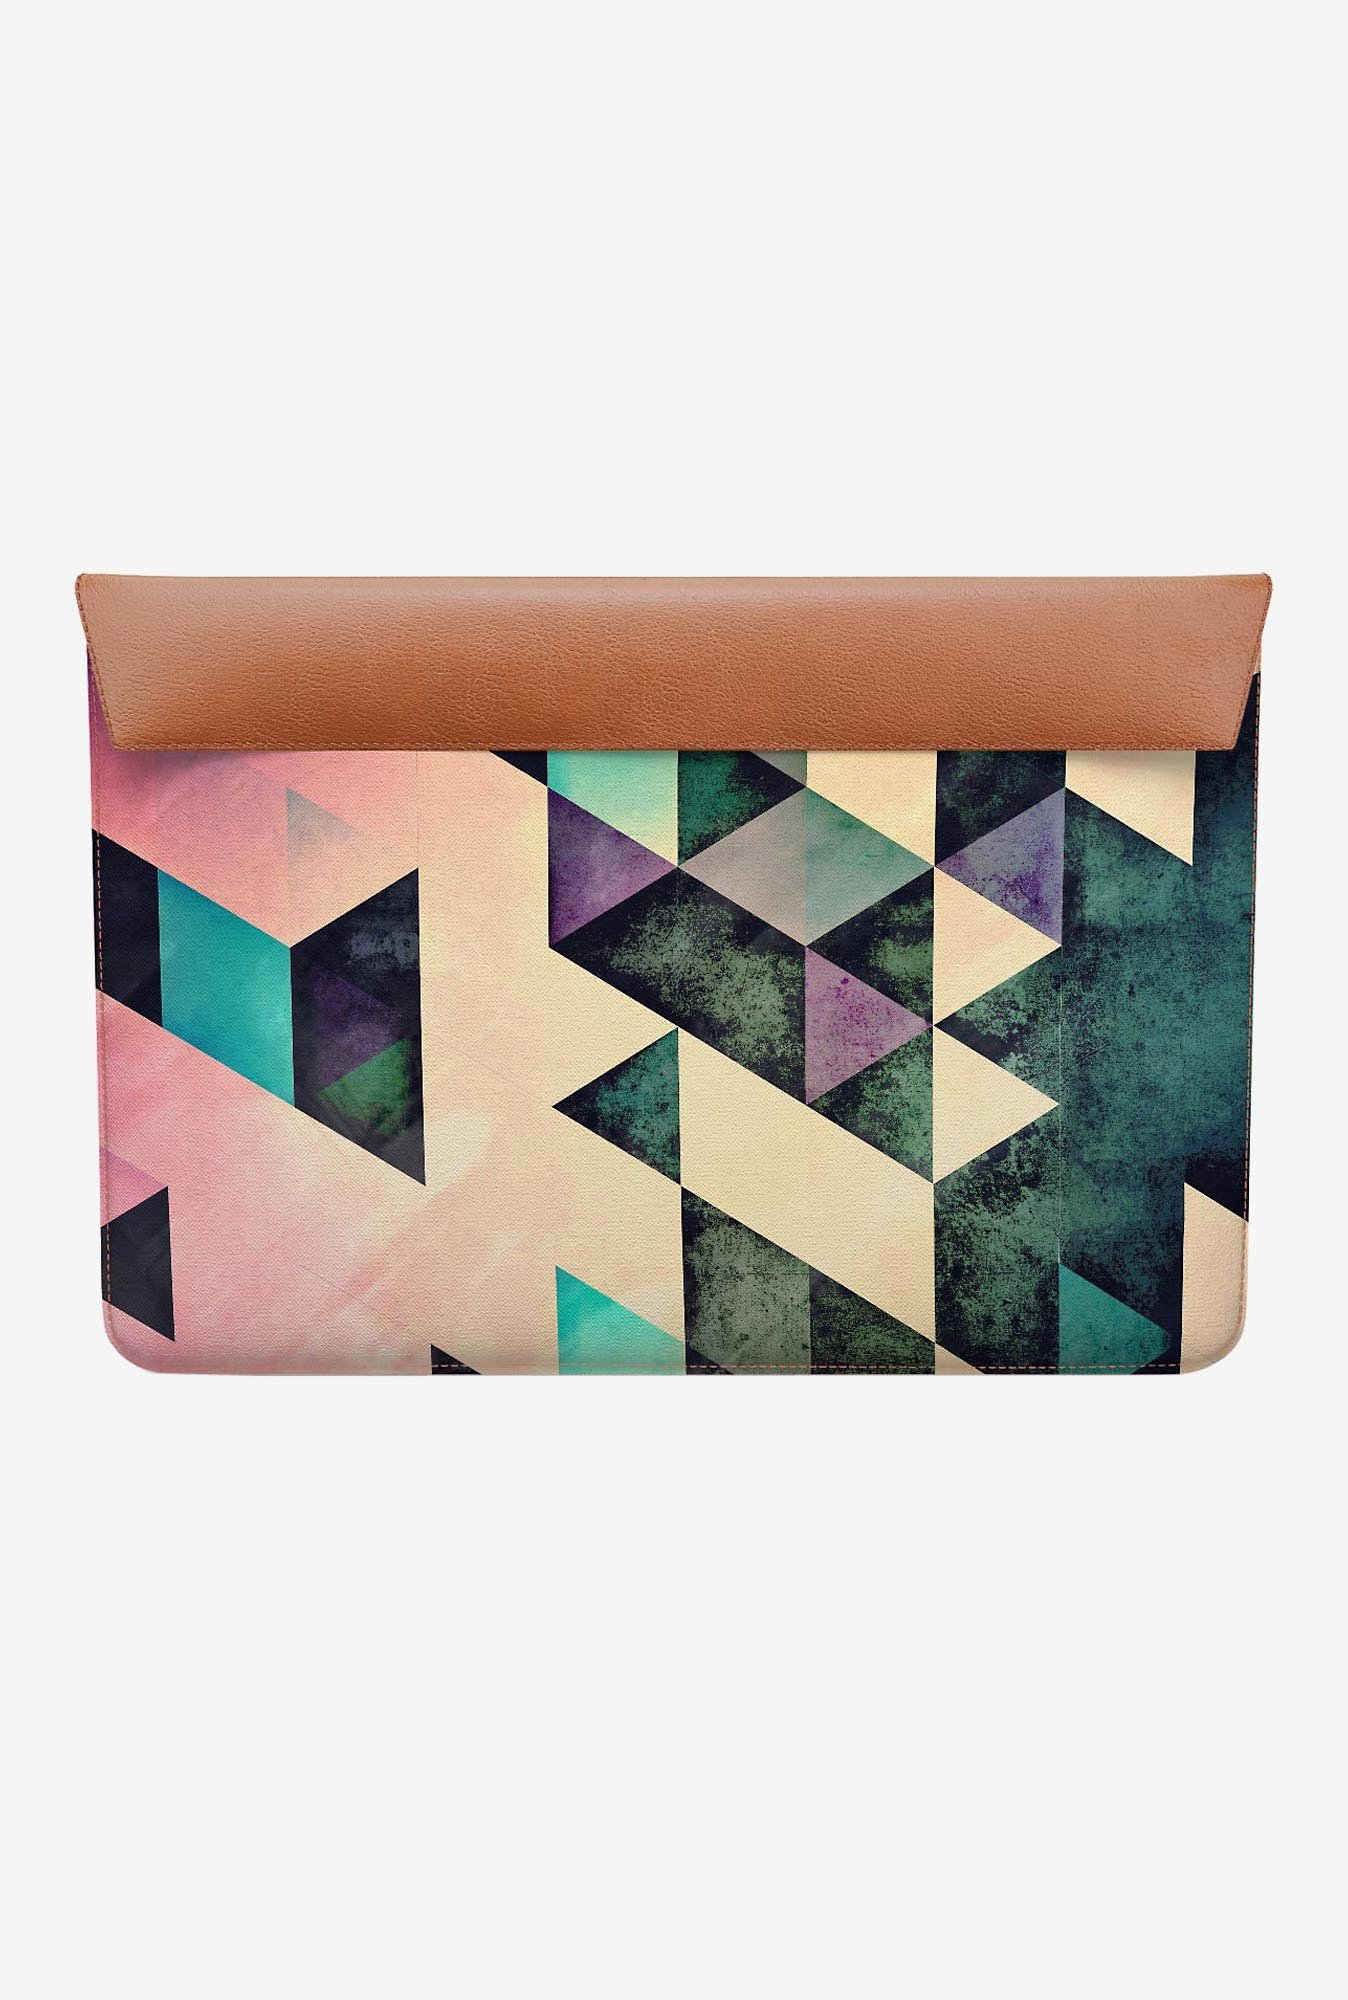 DailyObjects xtyyrk MacBook Air 11 Envelope Sleeve